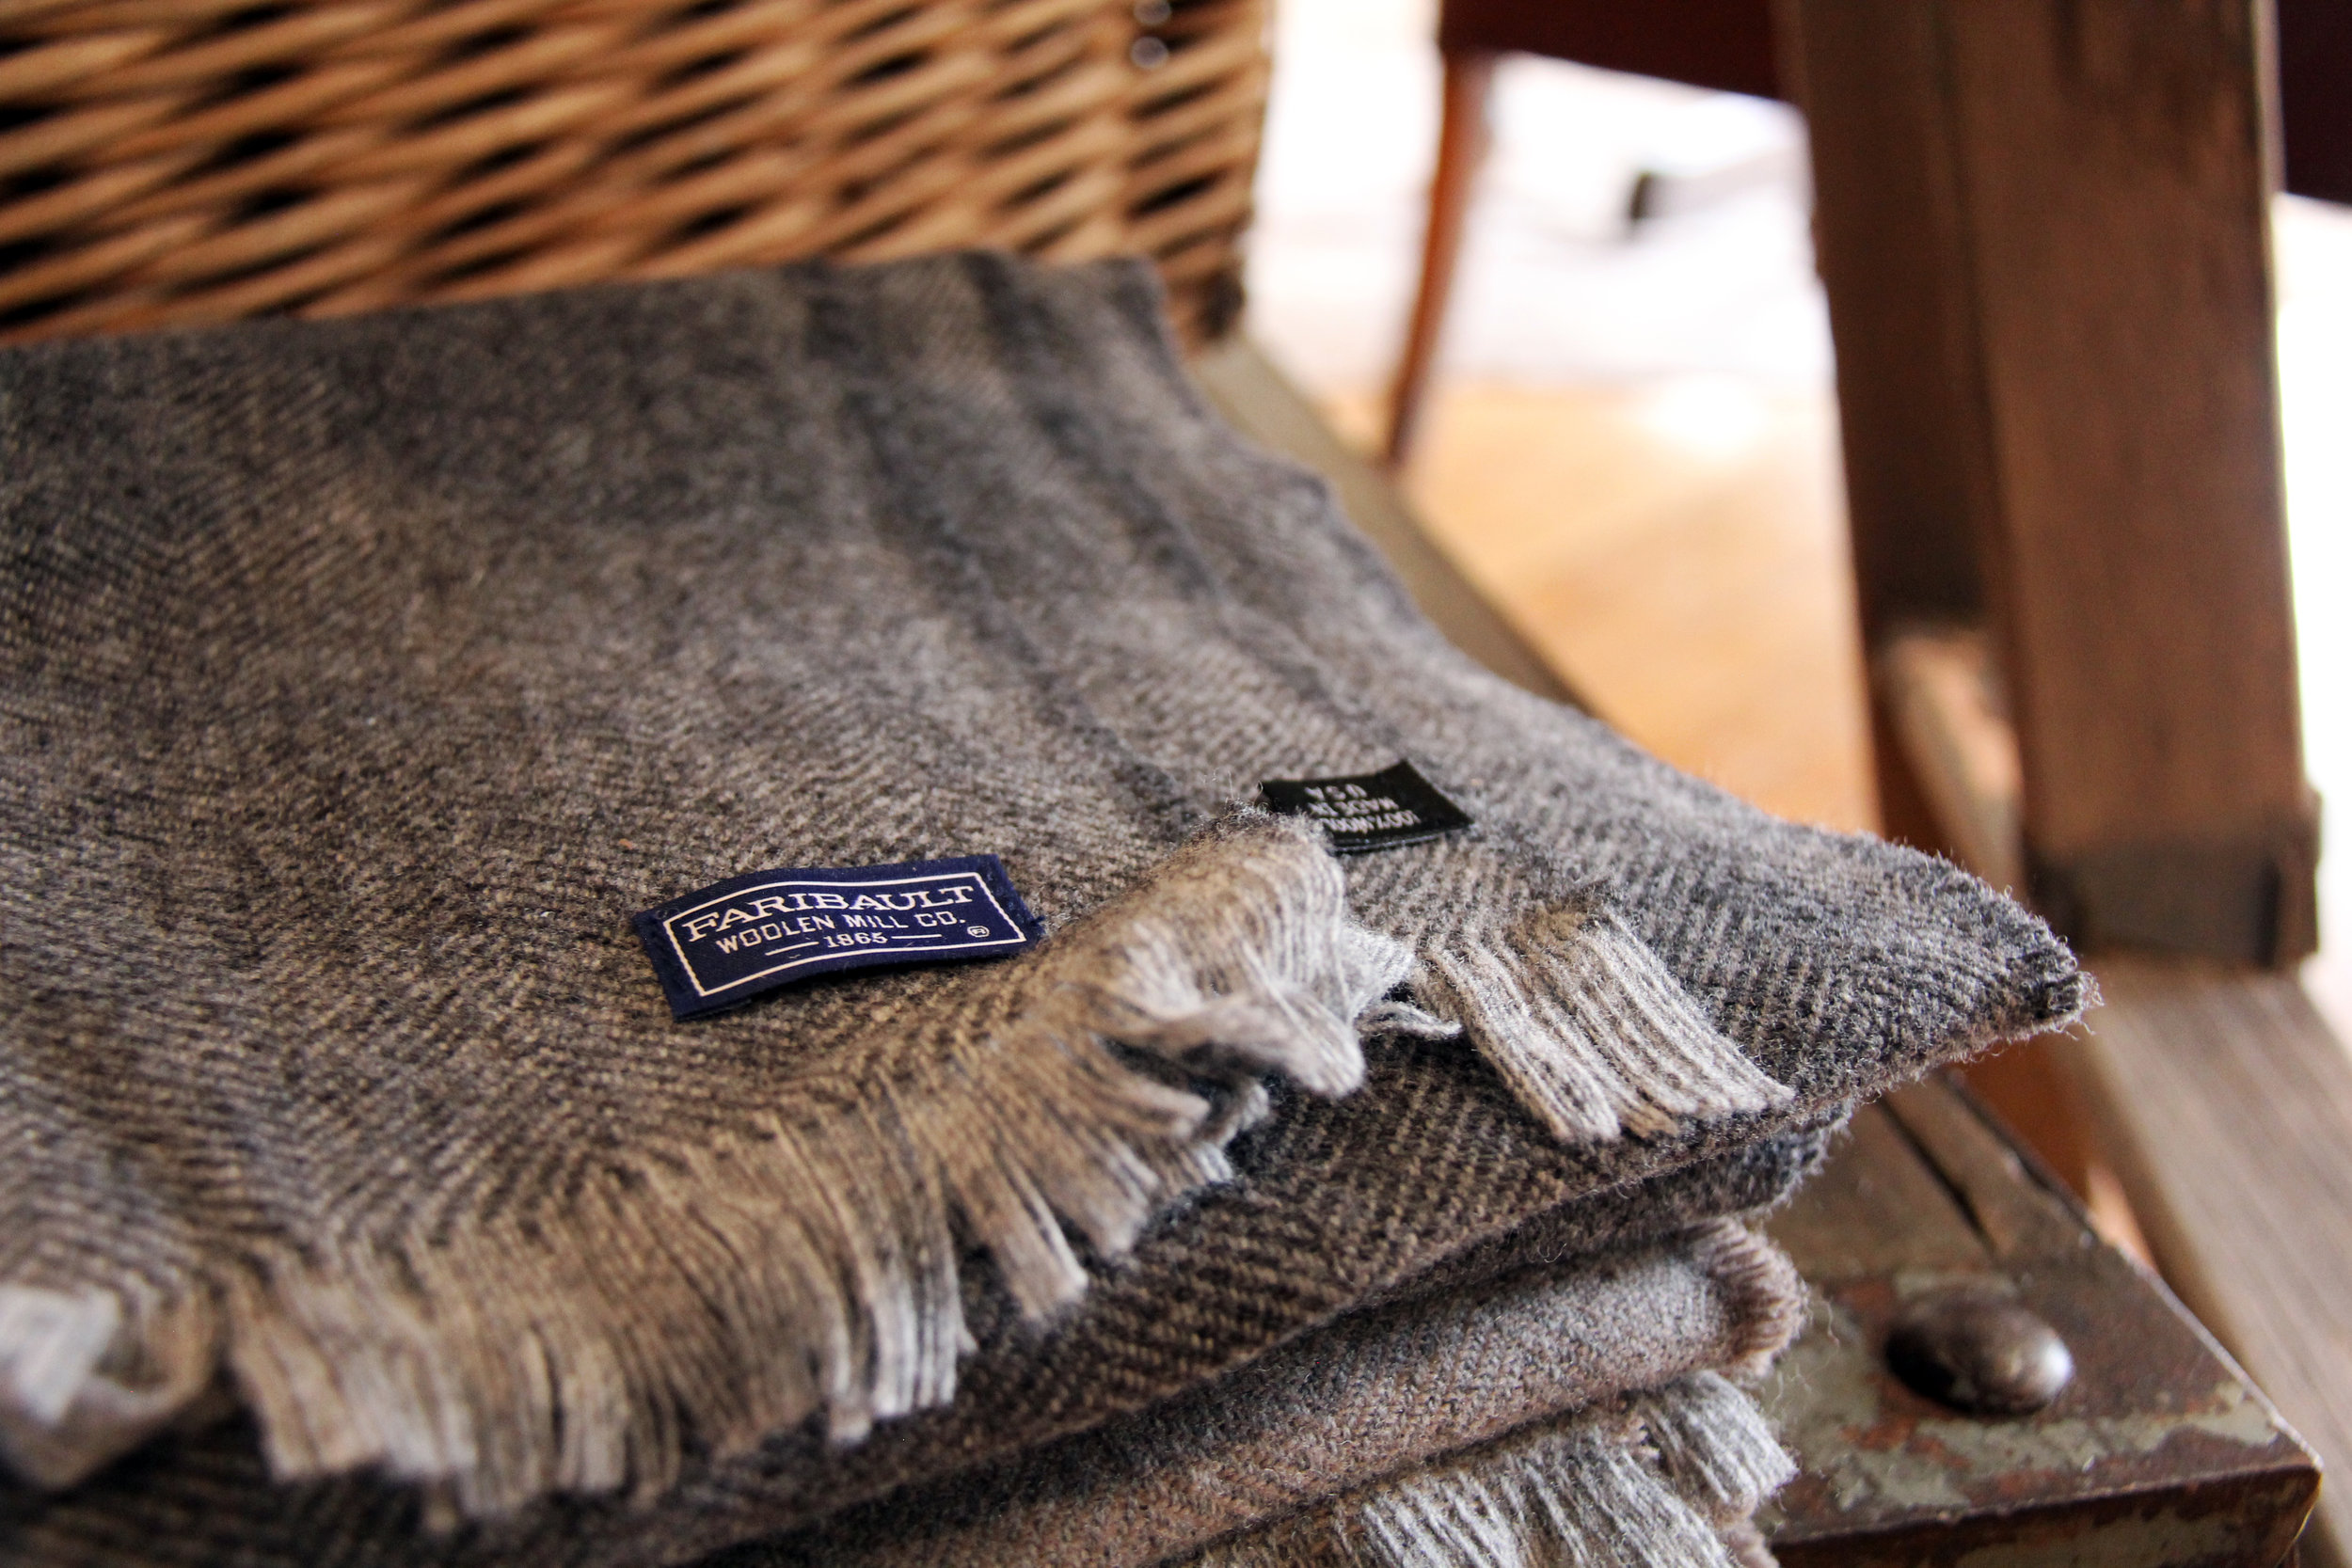 Wool scarves from Faribault Mill are great warm weather wear, and bonus, also make awesome runners and table decor